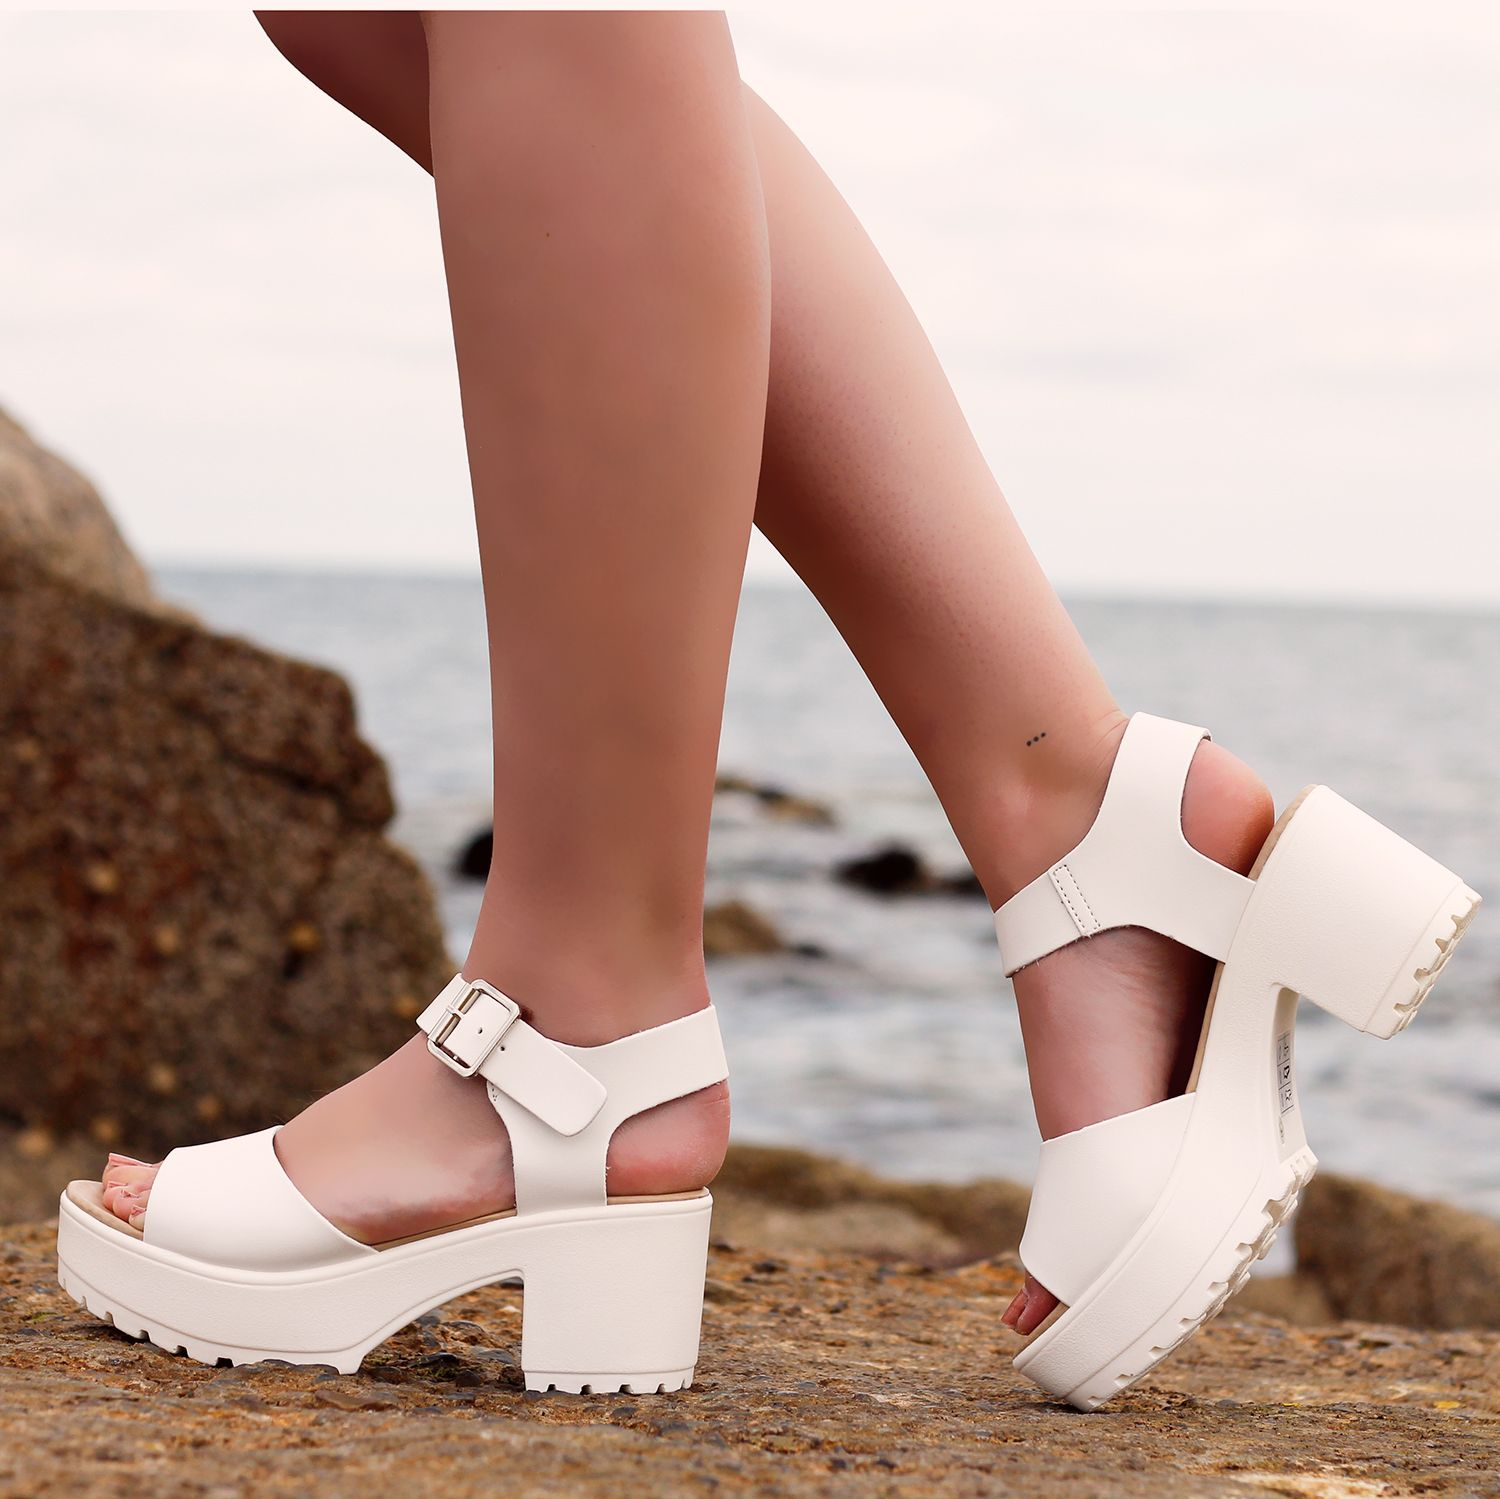 297460f6fb66 Killing it in white sandals this summer  korkys  korkys shoes  korkysshoes   fashion